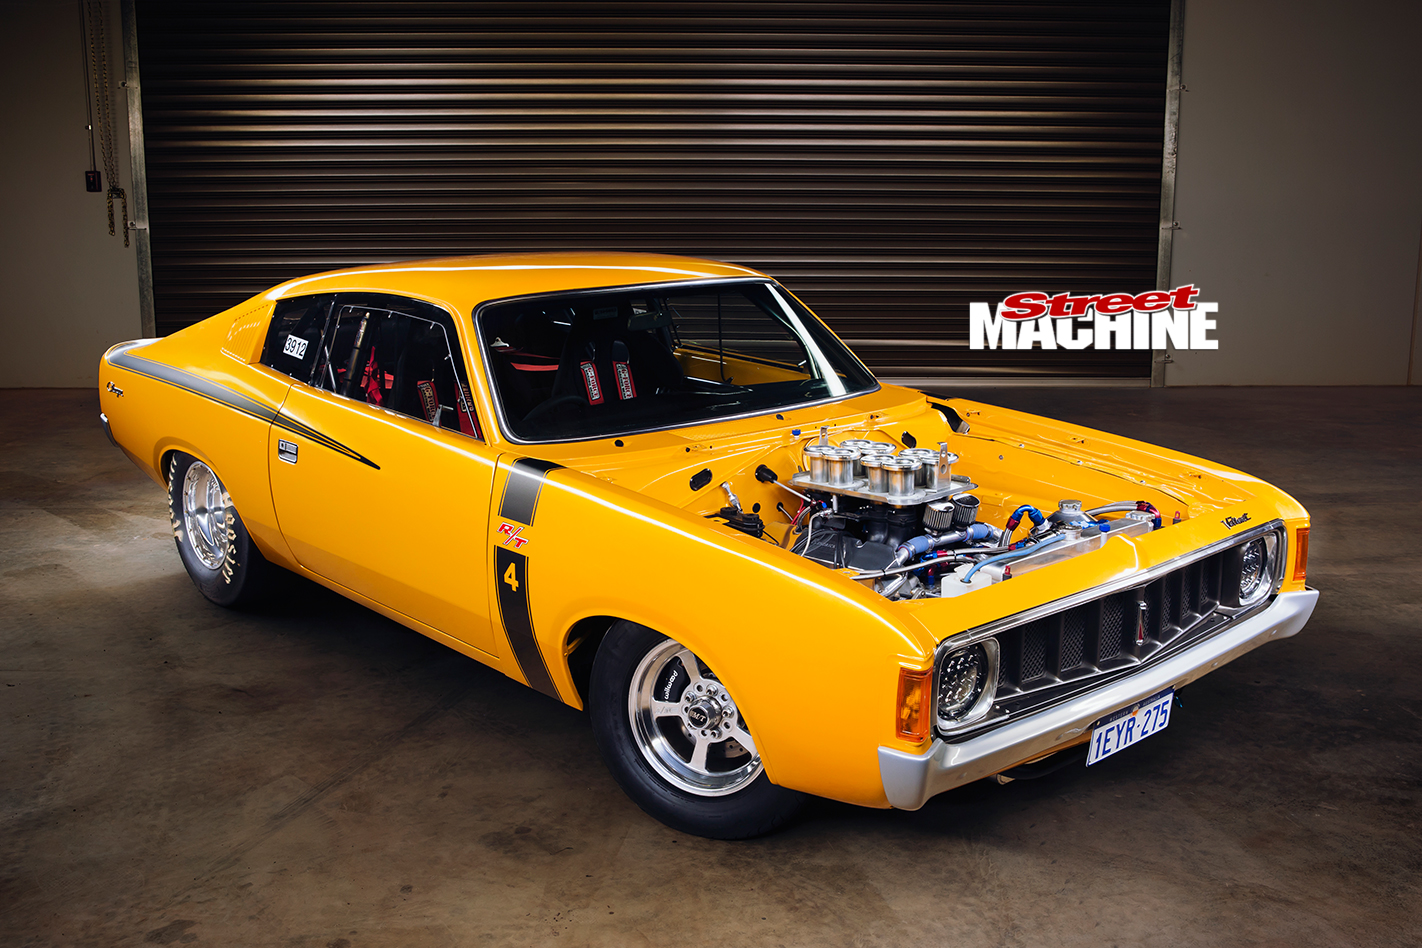 Chrysler -valiant -e 55-charger -front -angle